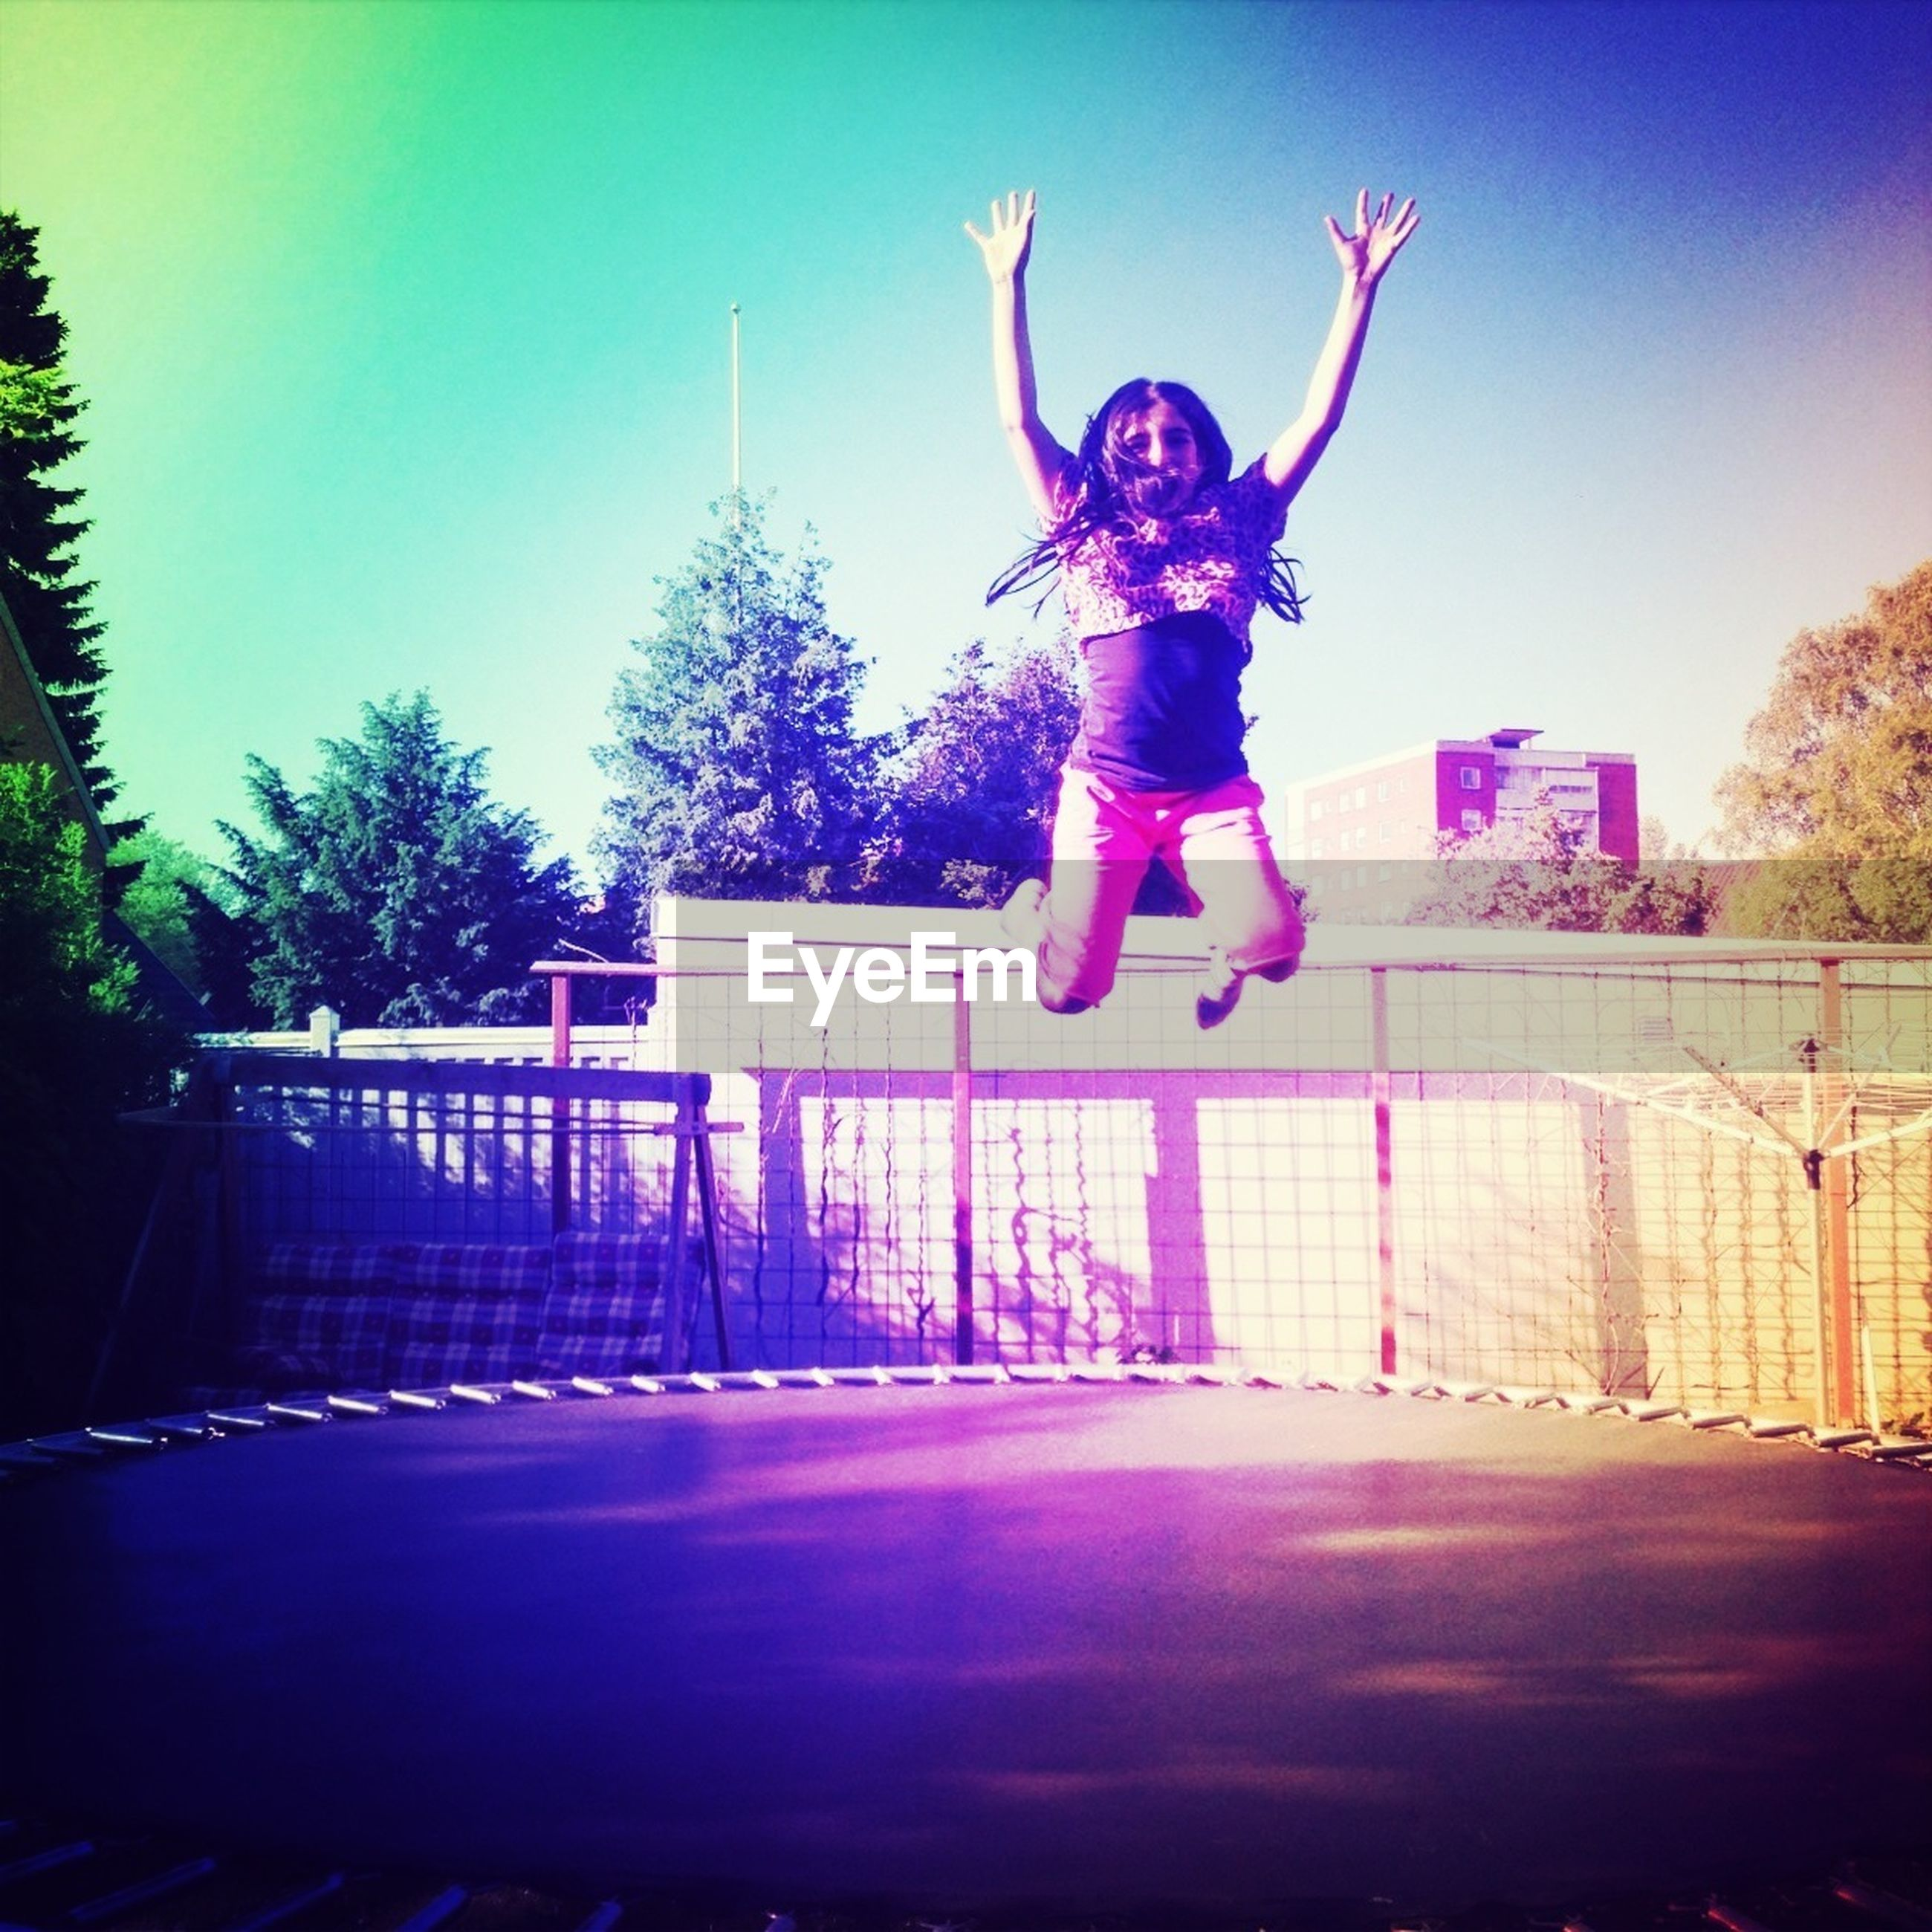 full length, lifestyles, leisure activity, young adult, person, jumping, casual clothing, mid-air, built structure, clear sky, architecture, fun, enjoyment, motion, front view, blue, sunlight, arms outstretched